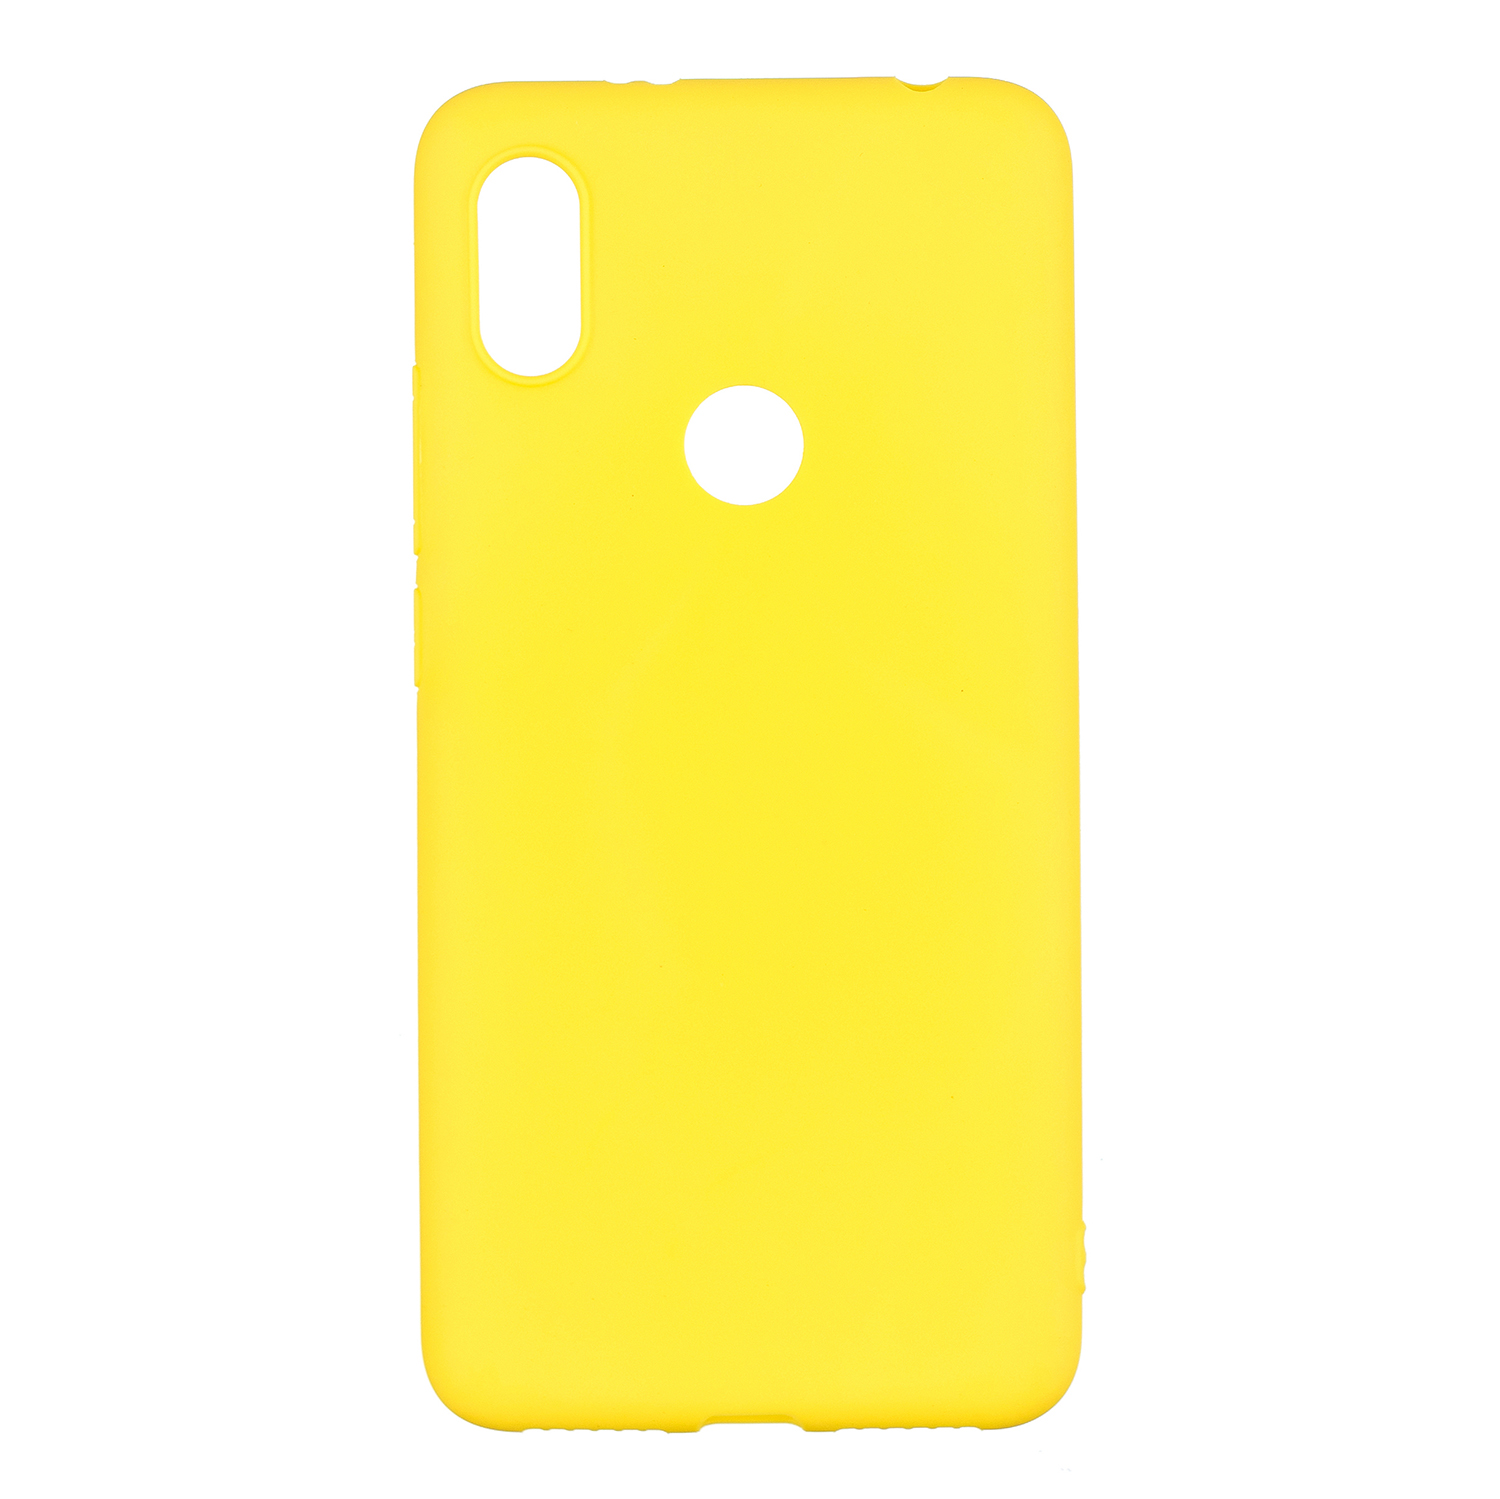 For HUAWEI Y6 2019 Lovely Candy Color Matte TPU Anti-scratch Non-slip Protective Cover Back Case yellow